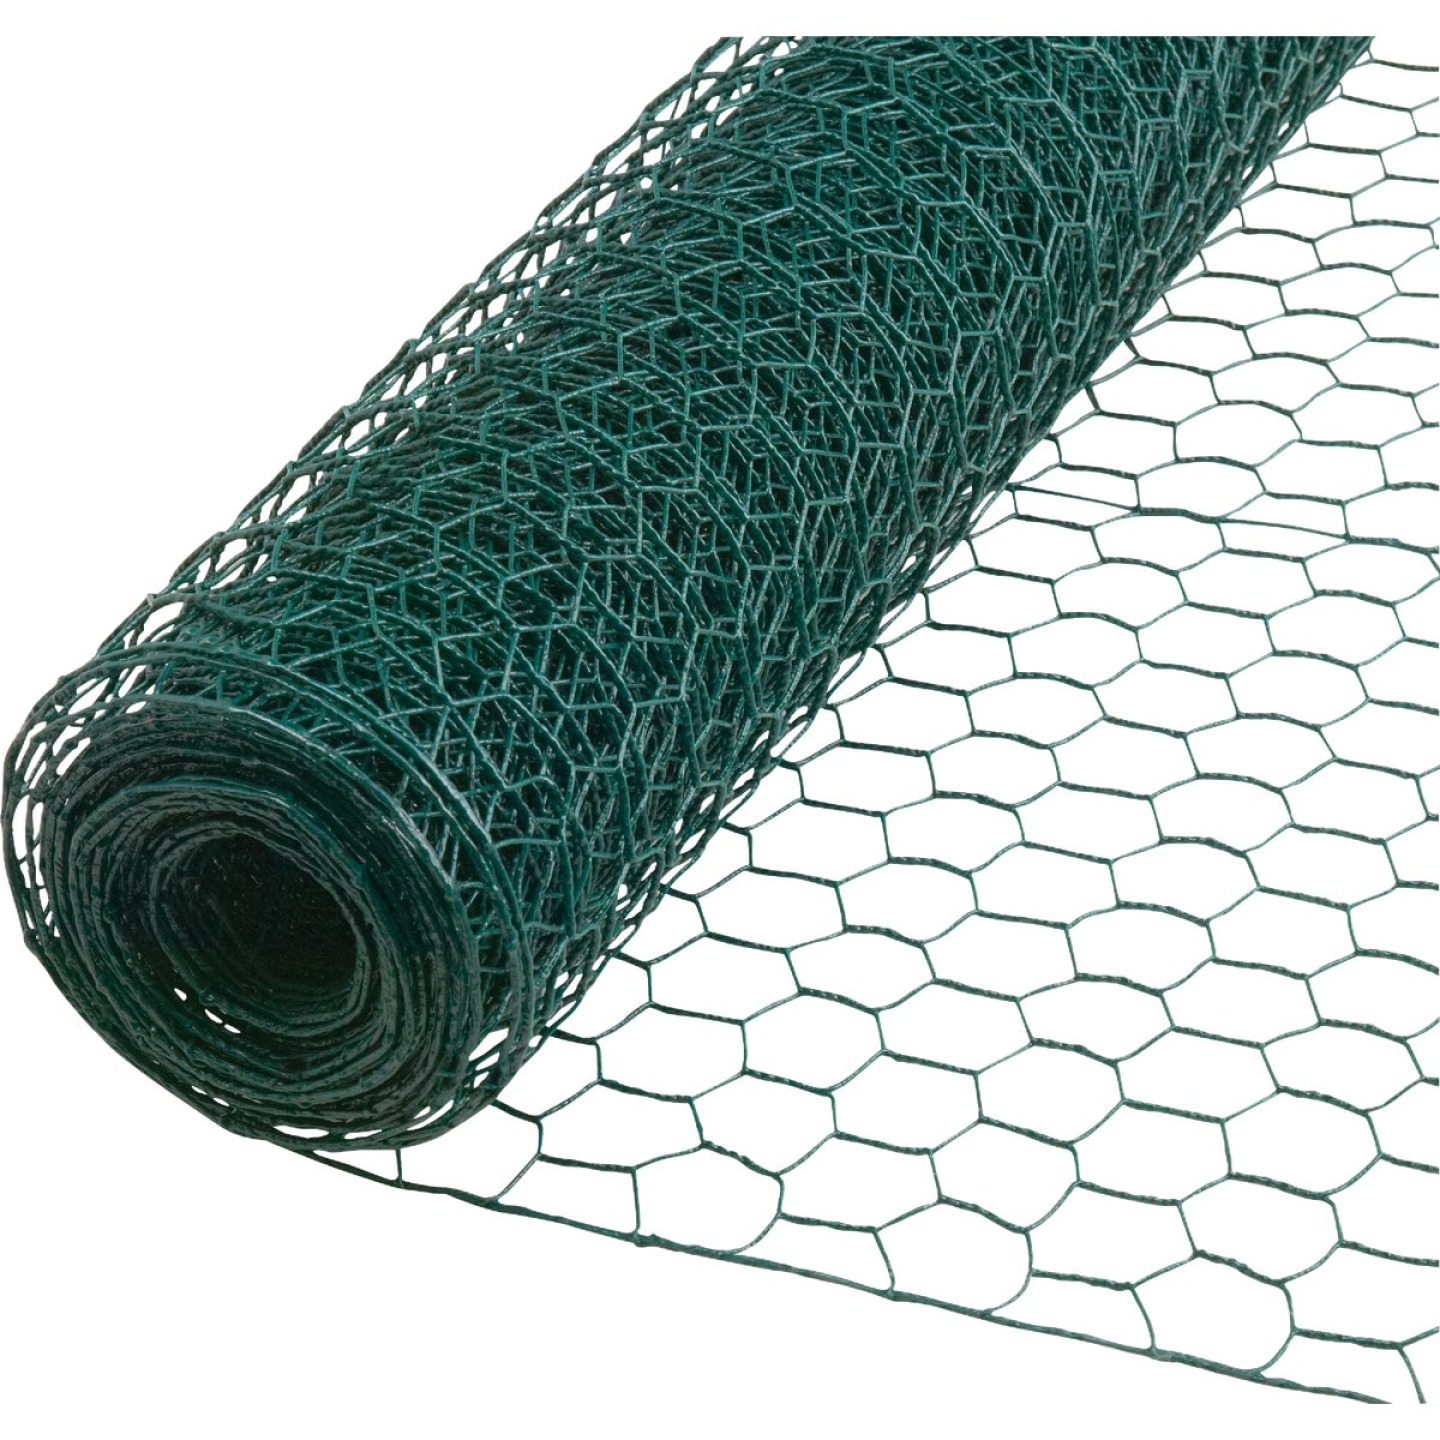 1 In. x 24 In. H. x 25 Ft. L. Green Vinyl-Coated Poultry Netting Image 1